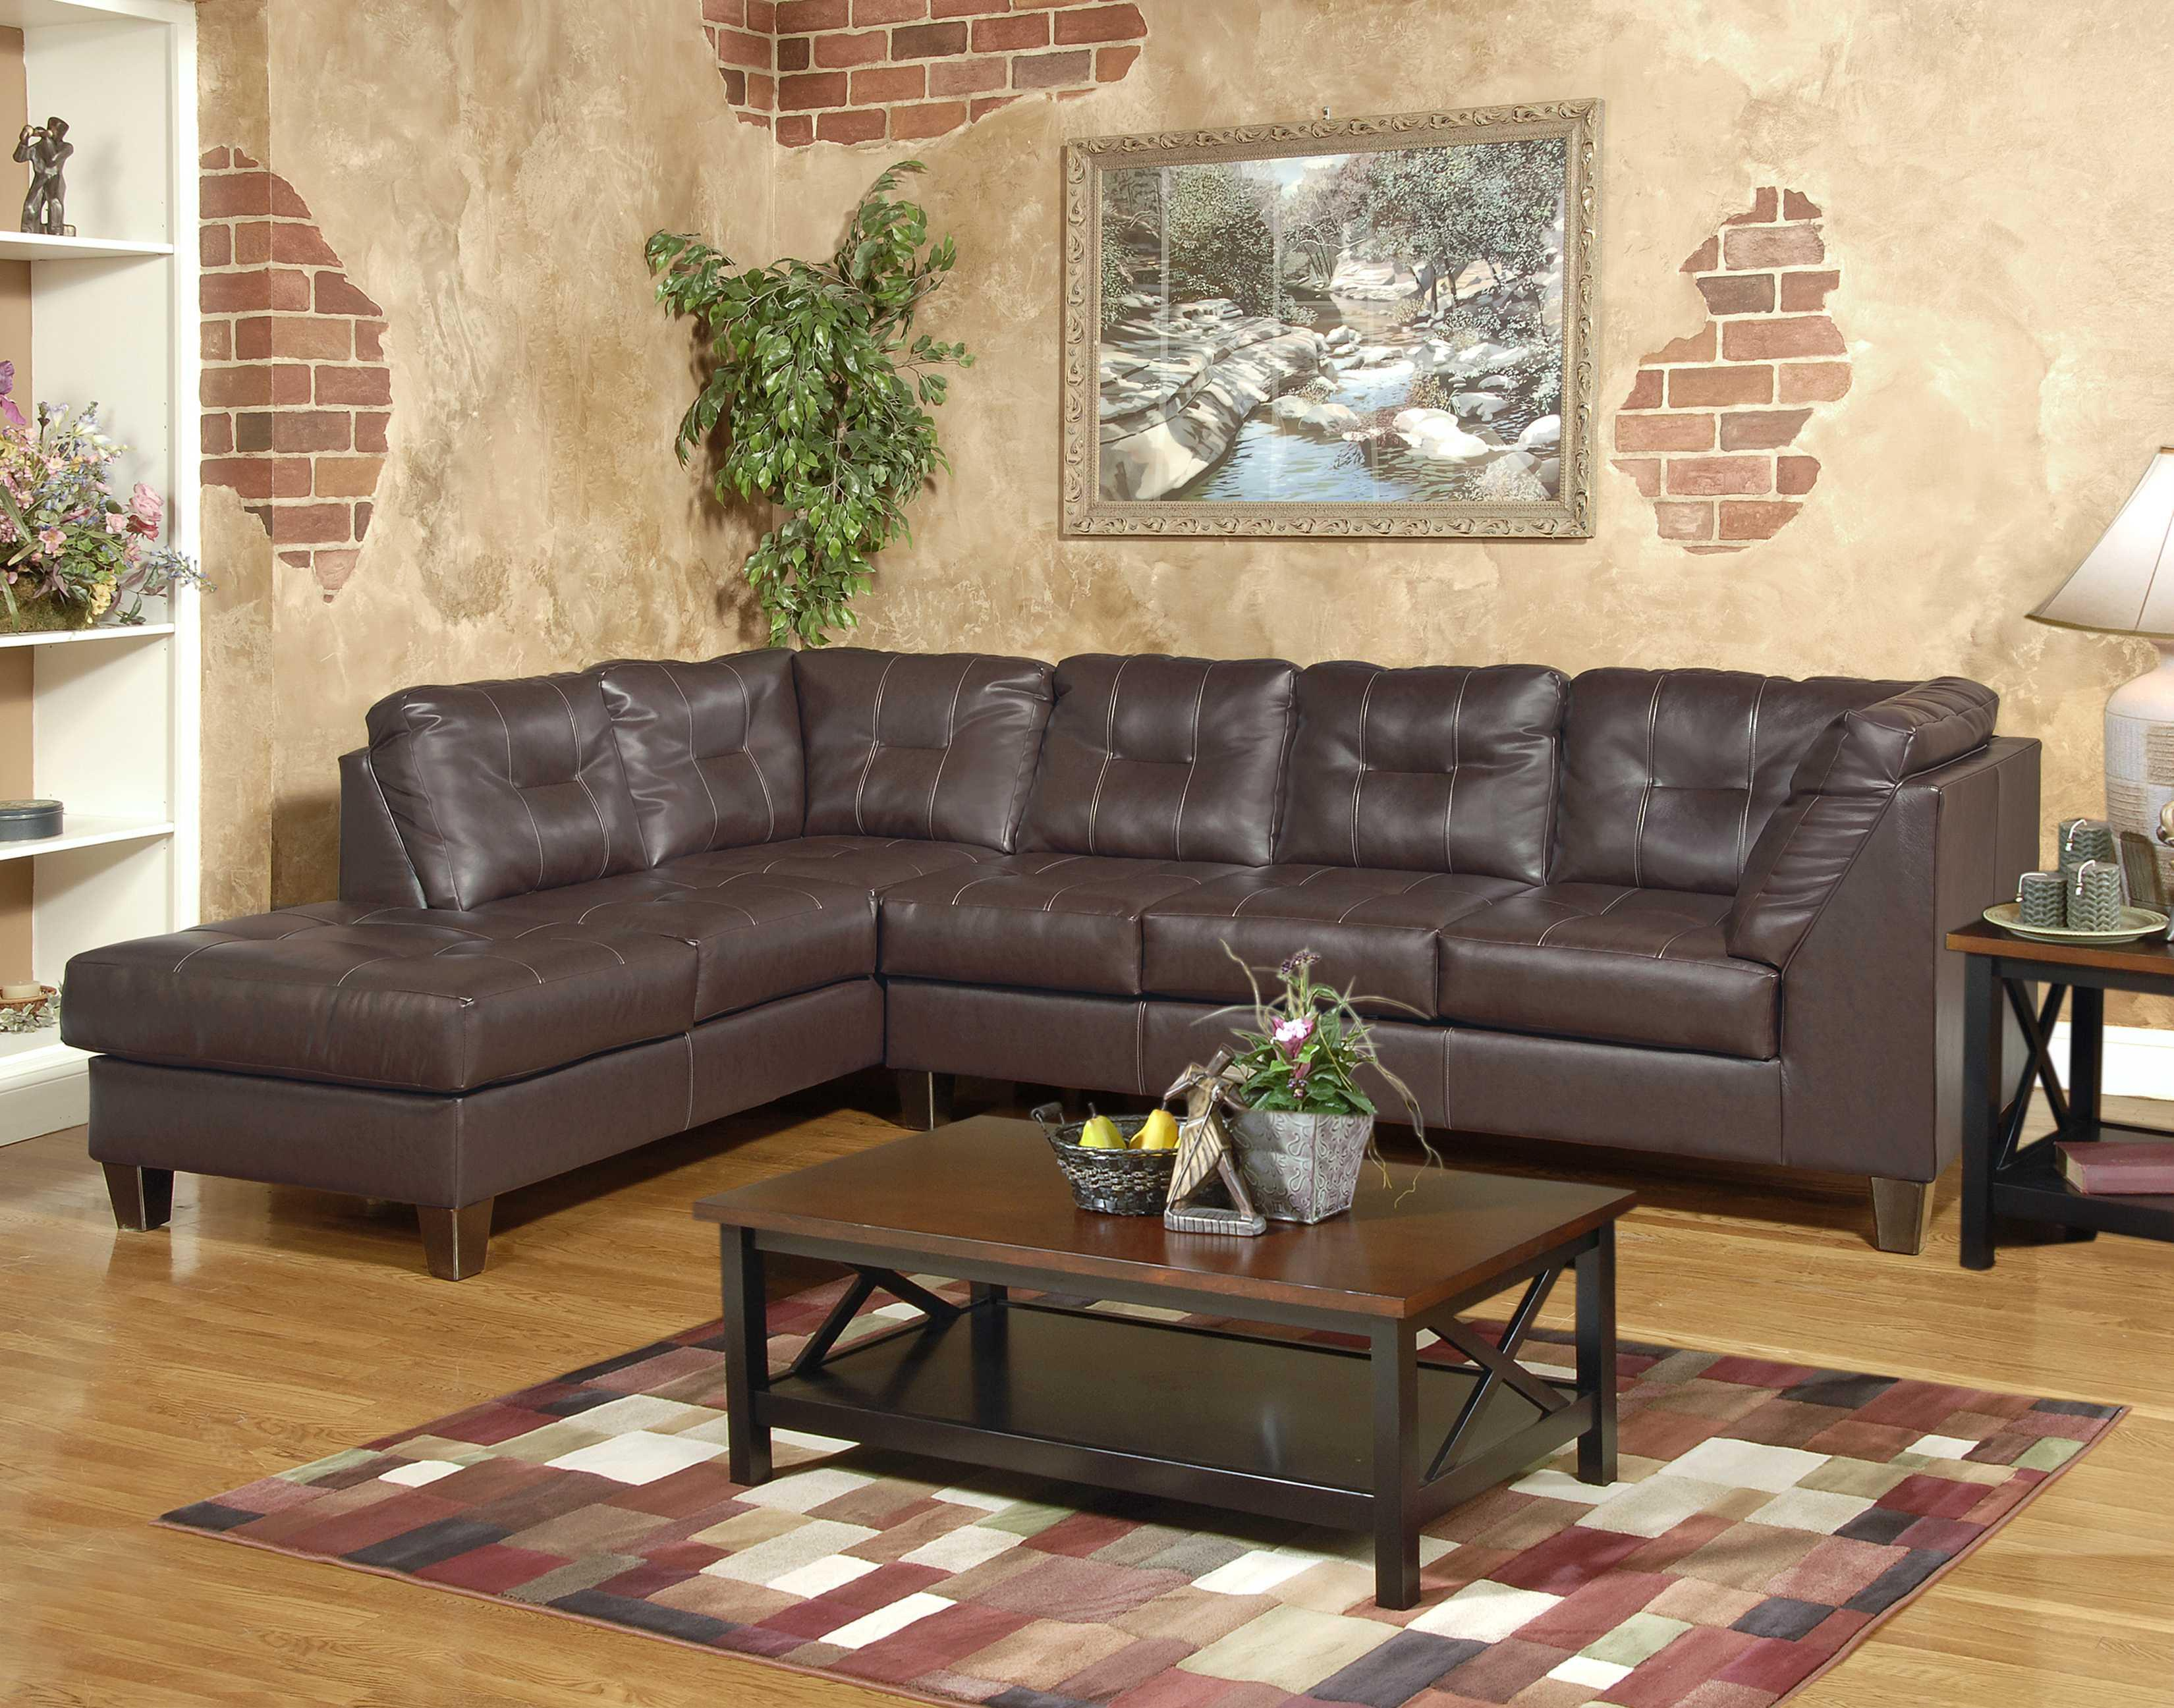 Serta Upholstery by Hughes 2500 2-Piece Sectional - Item Number: 2500